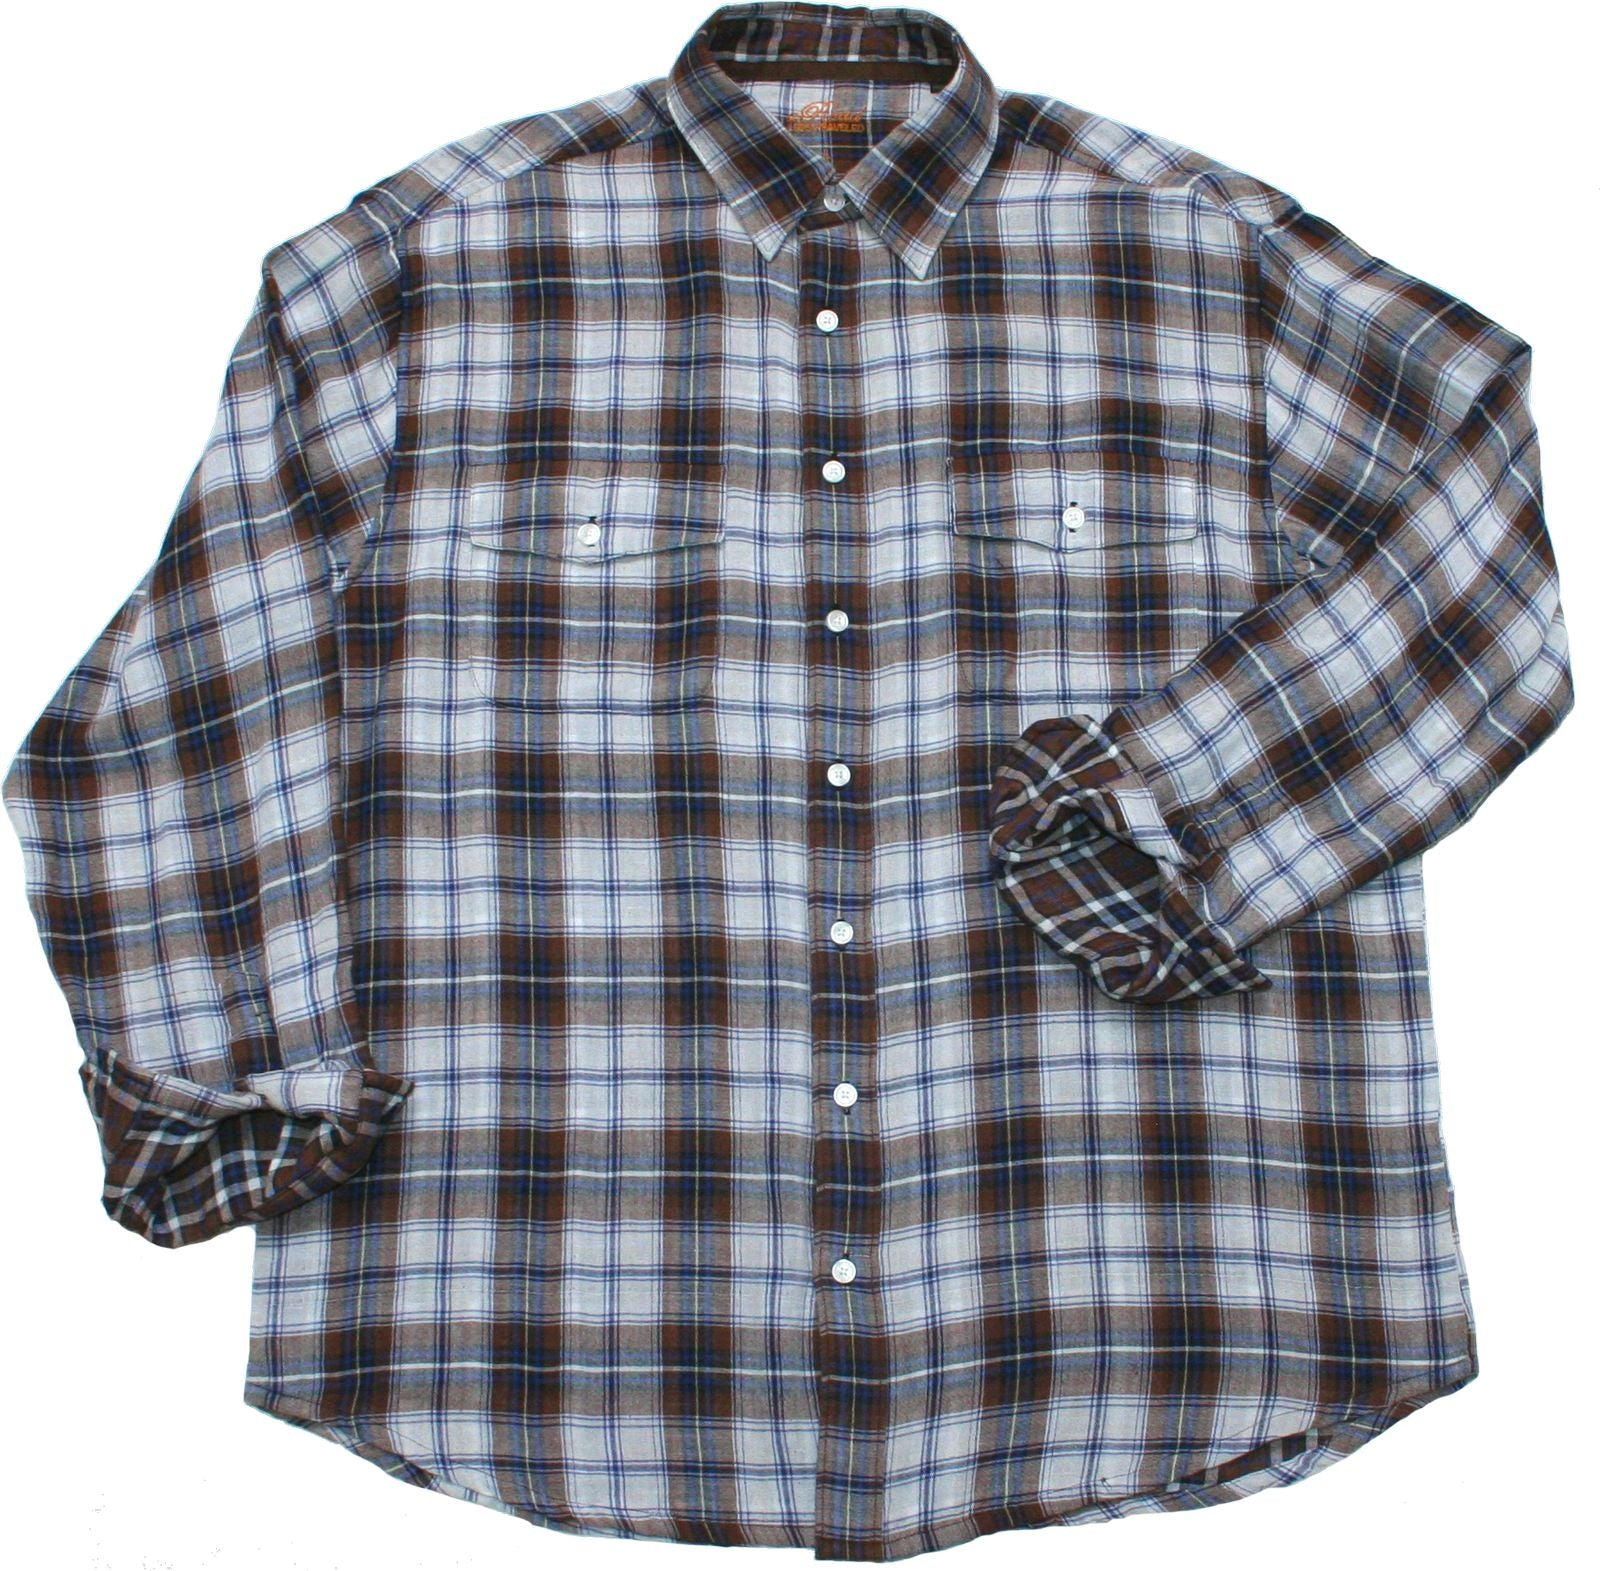 Hutton - 100% Cotton Dual Plaid Shirt